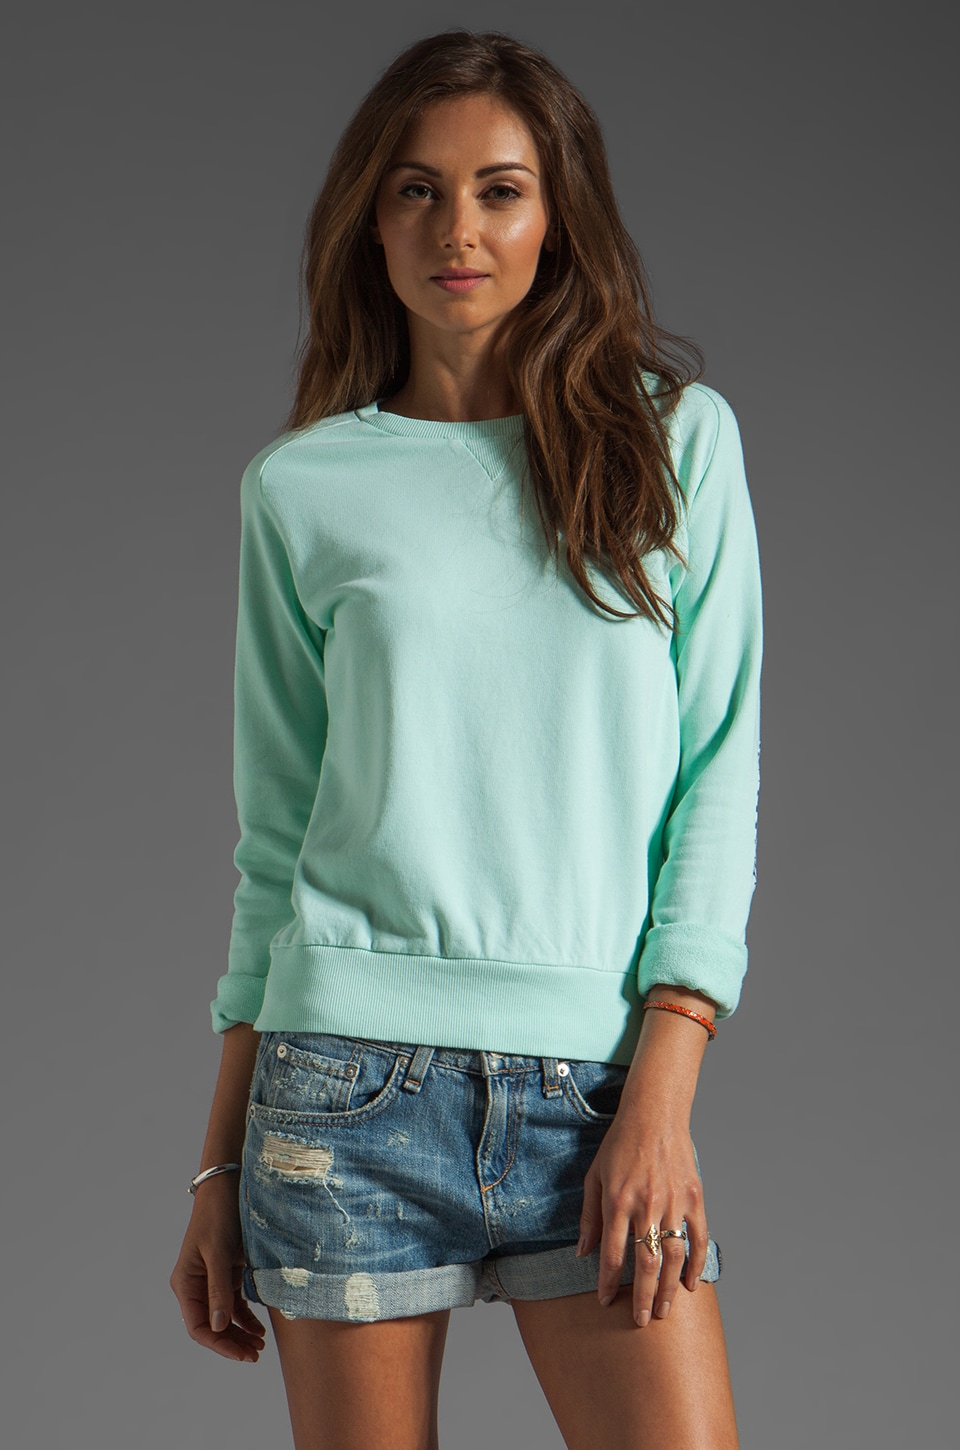 Antik Batik Johnny Sweatshirt in Aqua